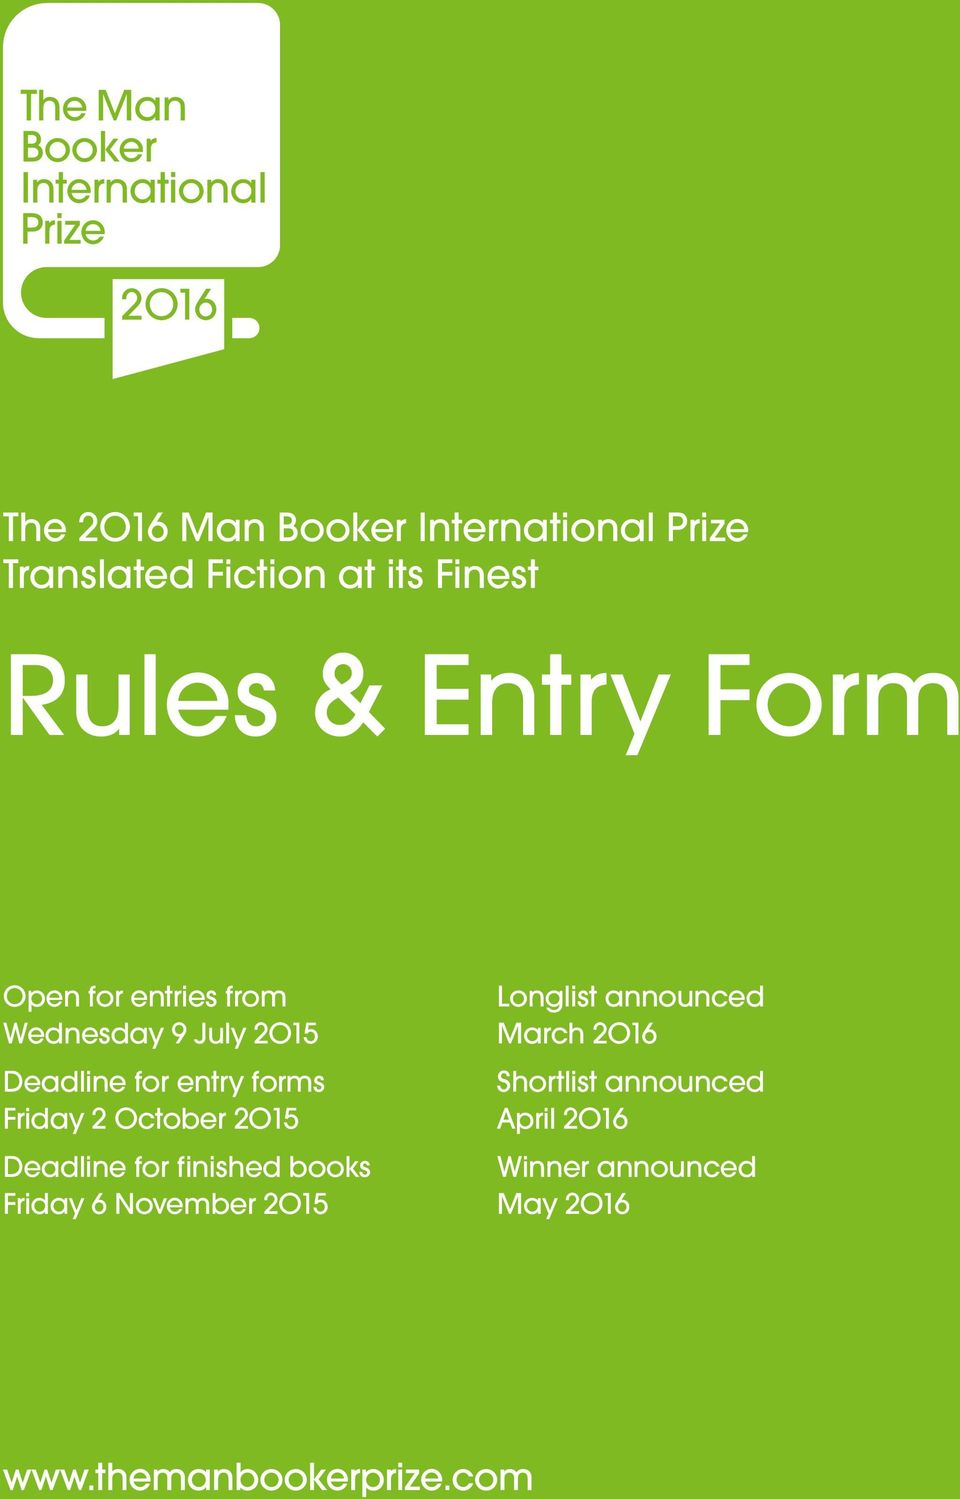 forms Friday 2 October 2O15 Deadline for finished books Friday 6 November 2O15